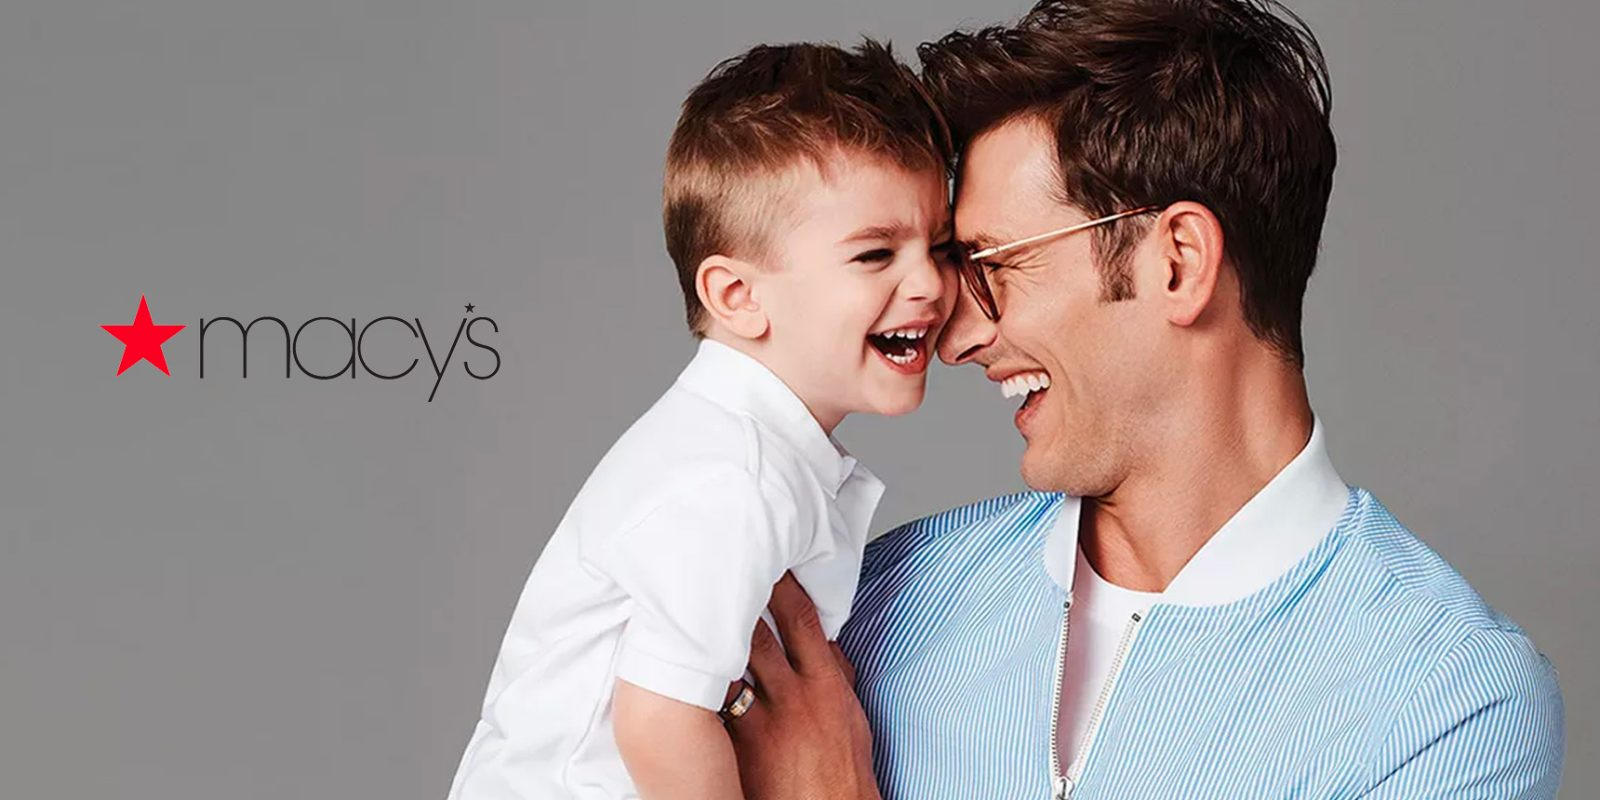 adf9d87a92 Macy's - 9to5Toys